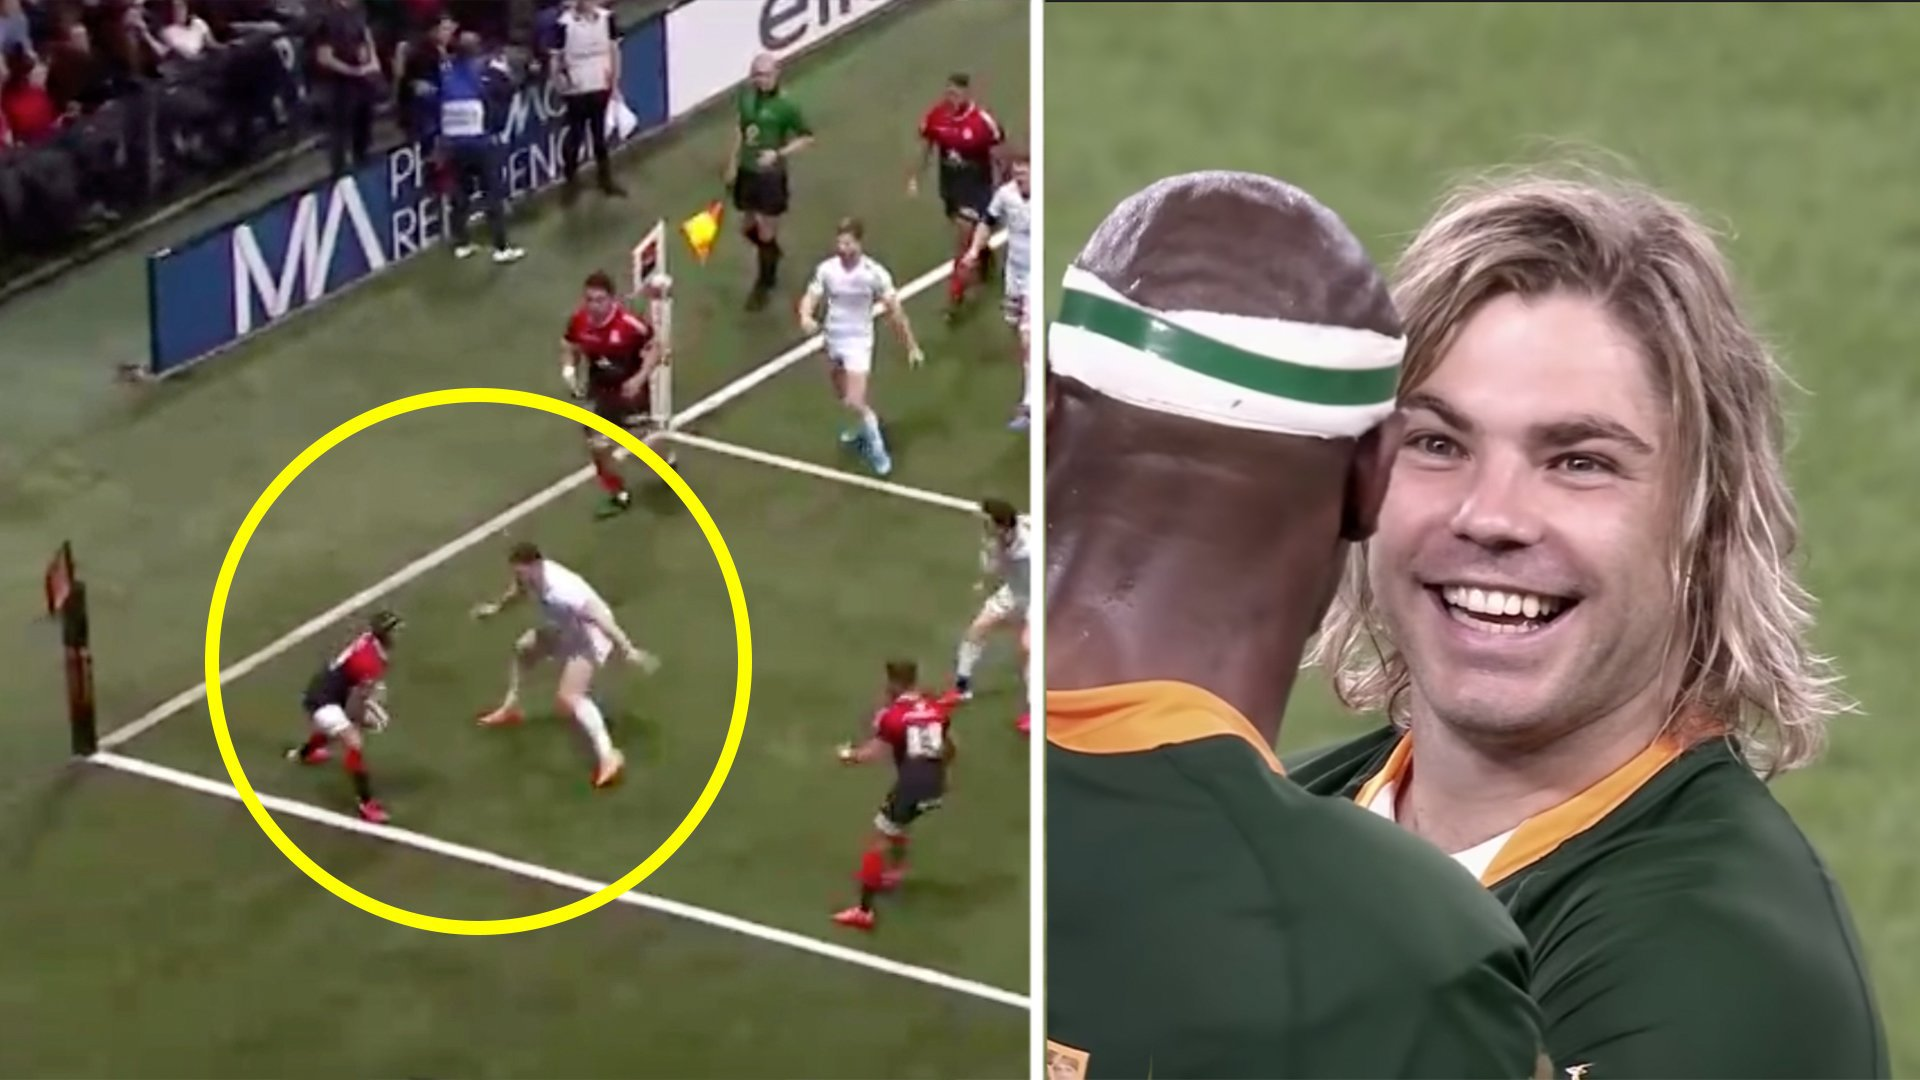 Incredible new video shows how effective Faf de Klerk and Cheslin Kolbe are despite their size